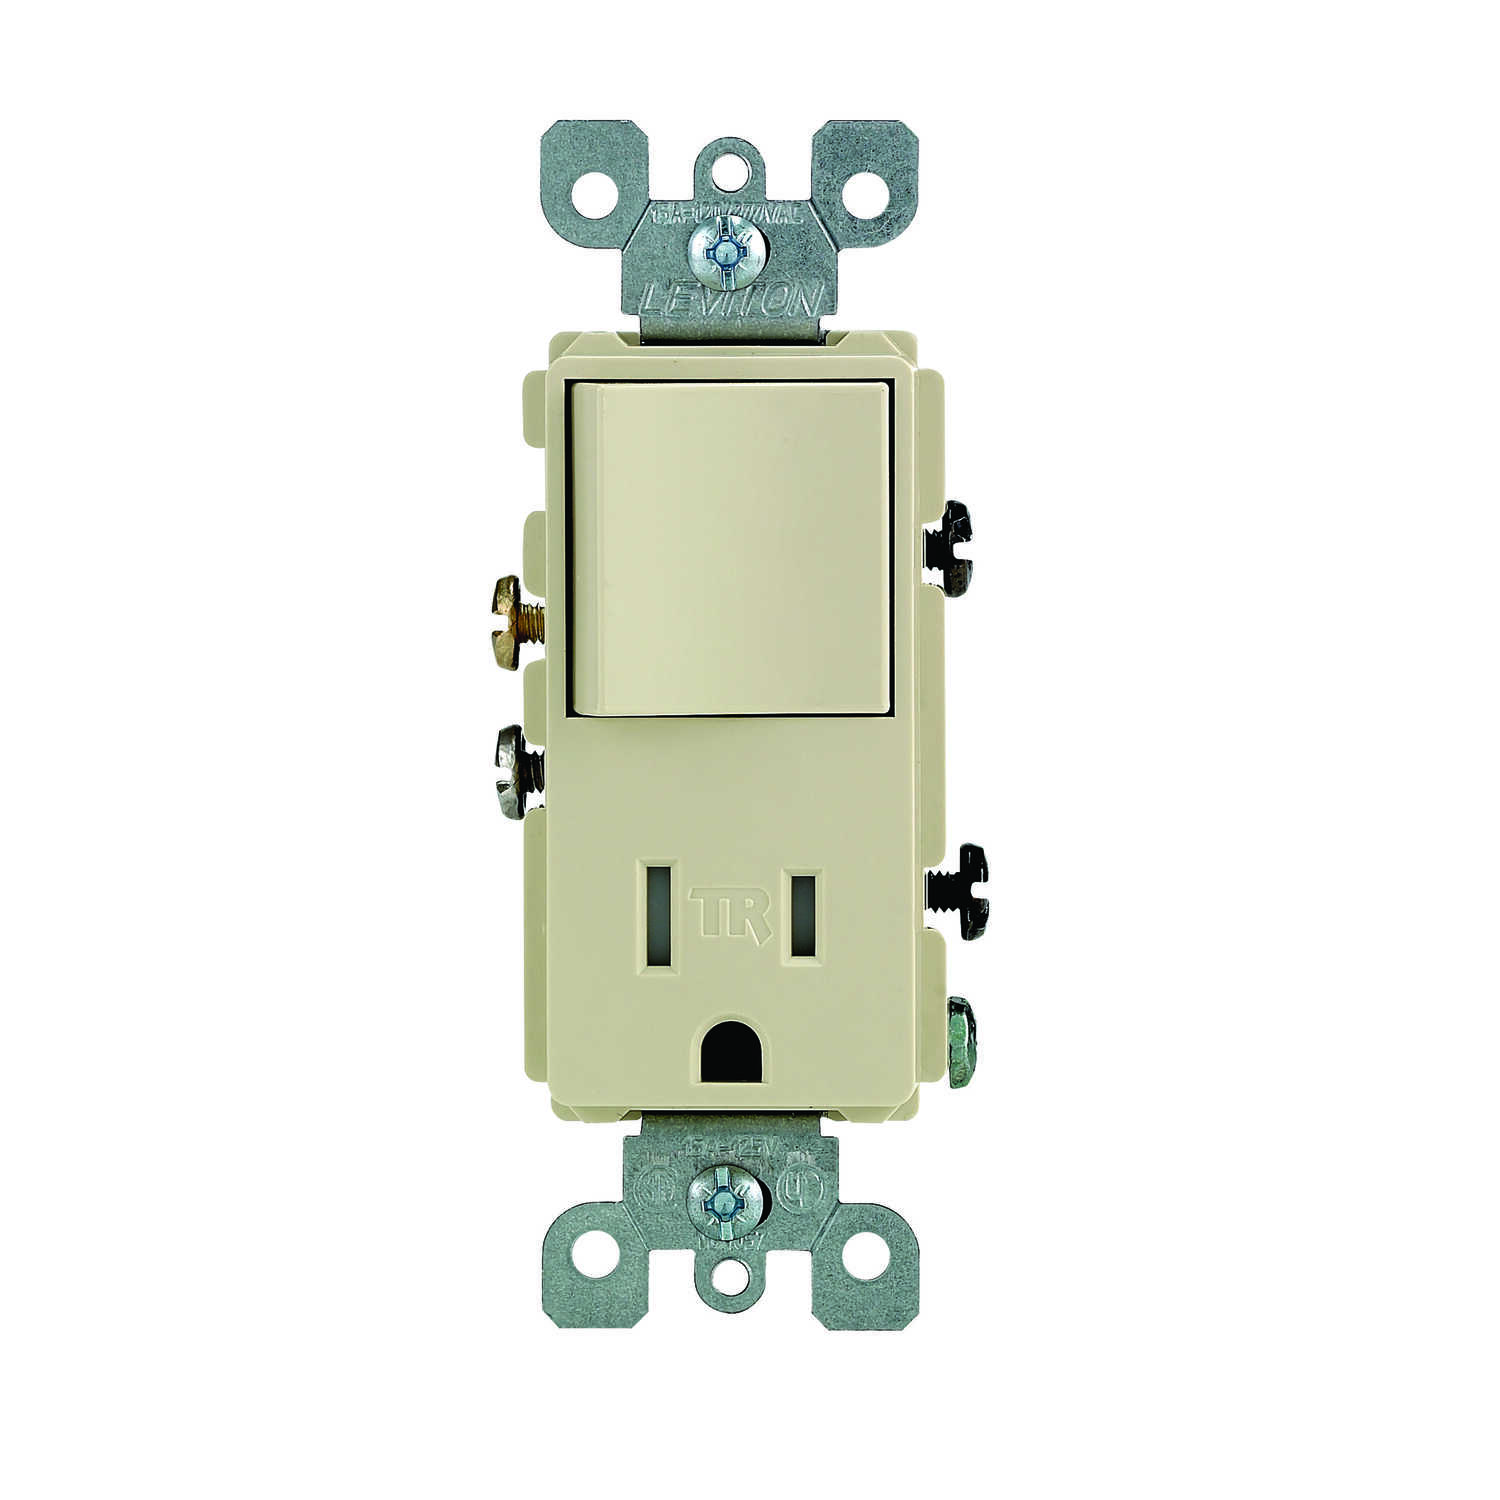 Leviton  Decora  15 amps 125 volt Ivory  Combination Switch/Outlet  5-15R  1 pk